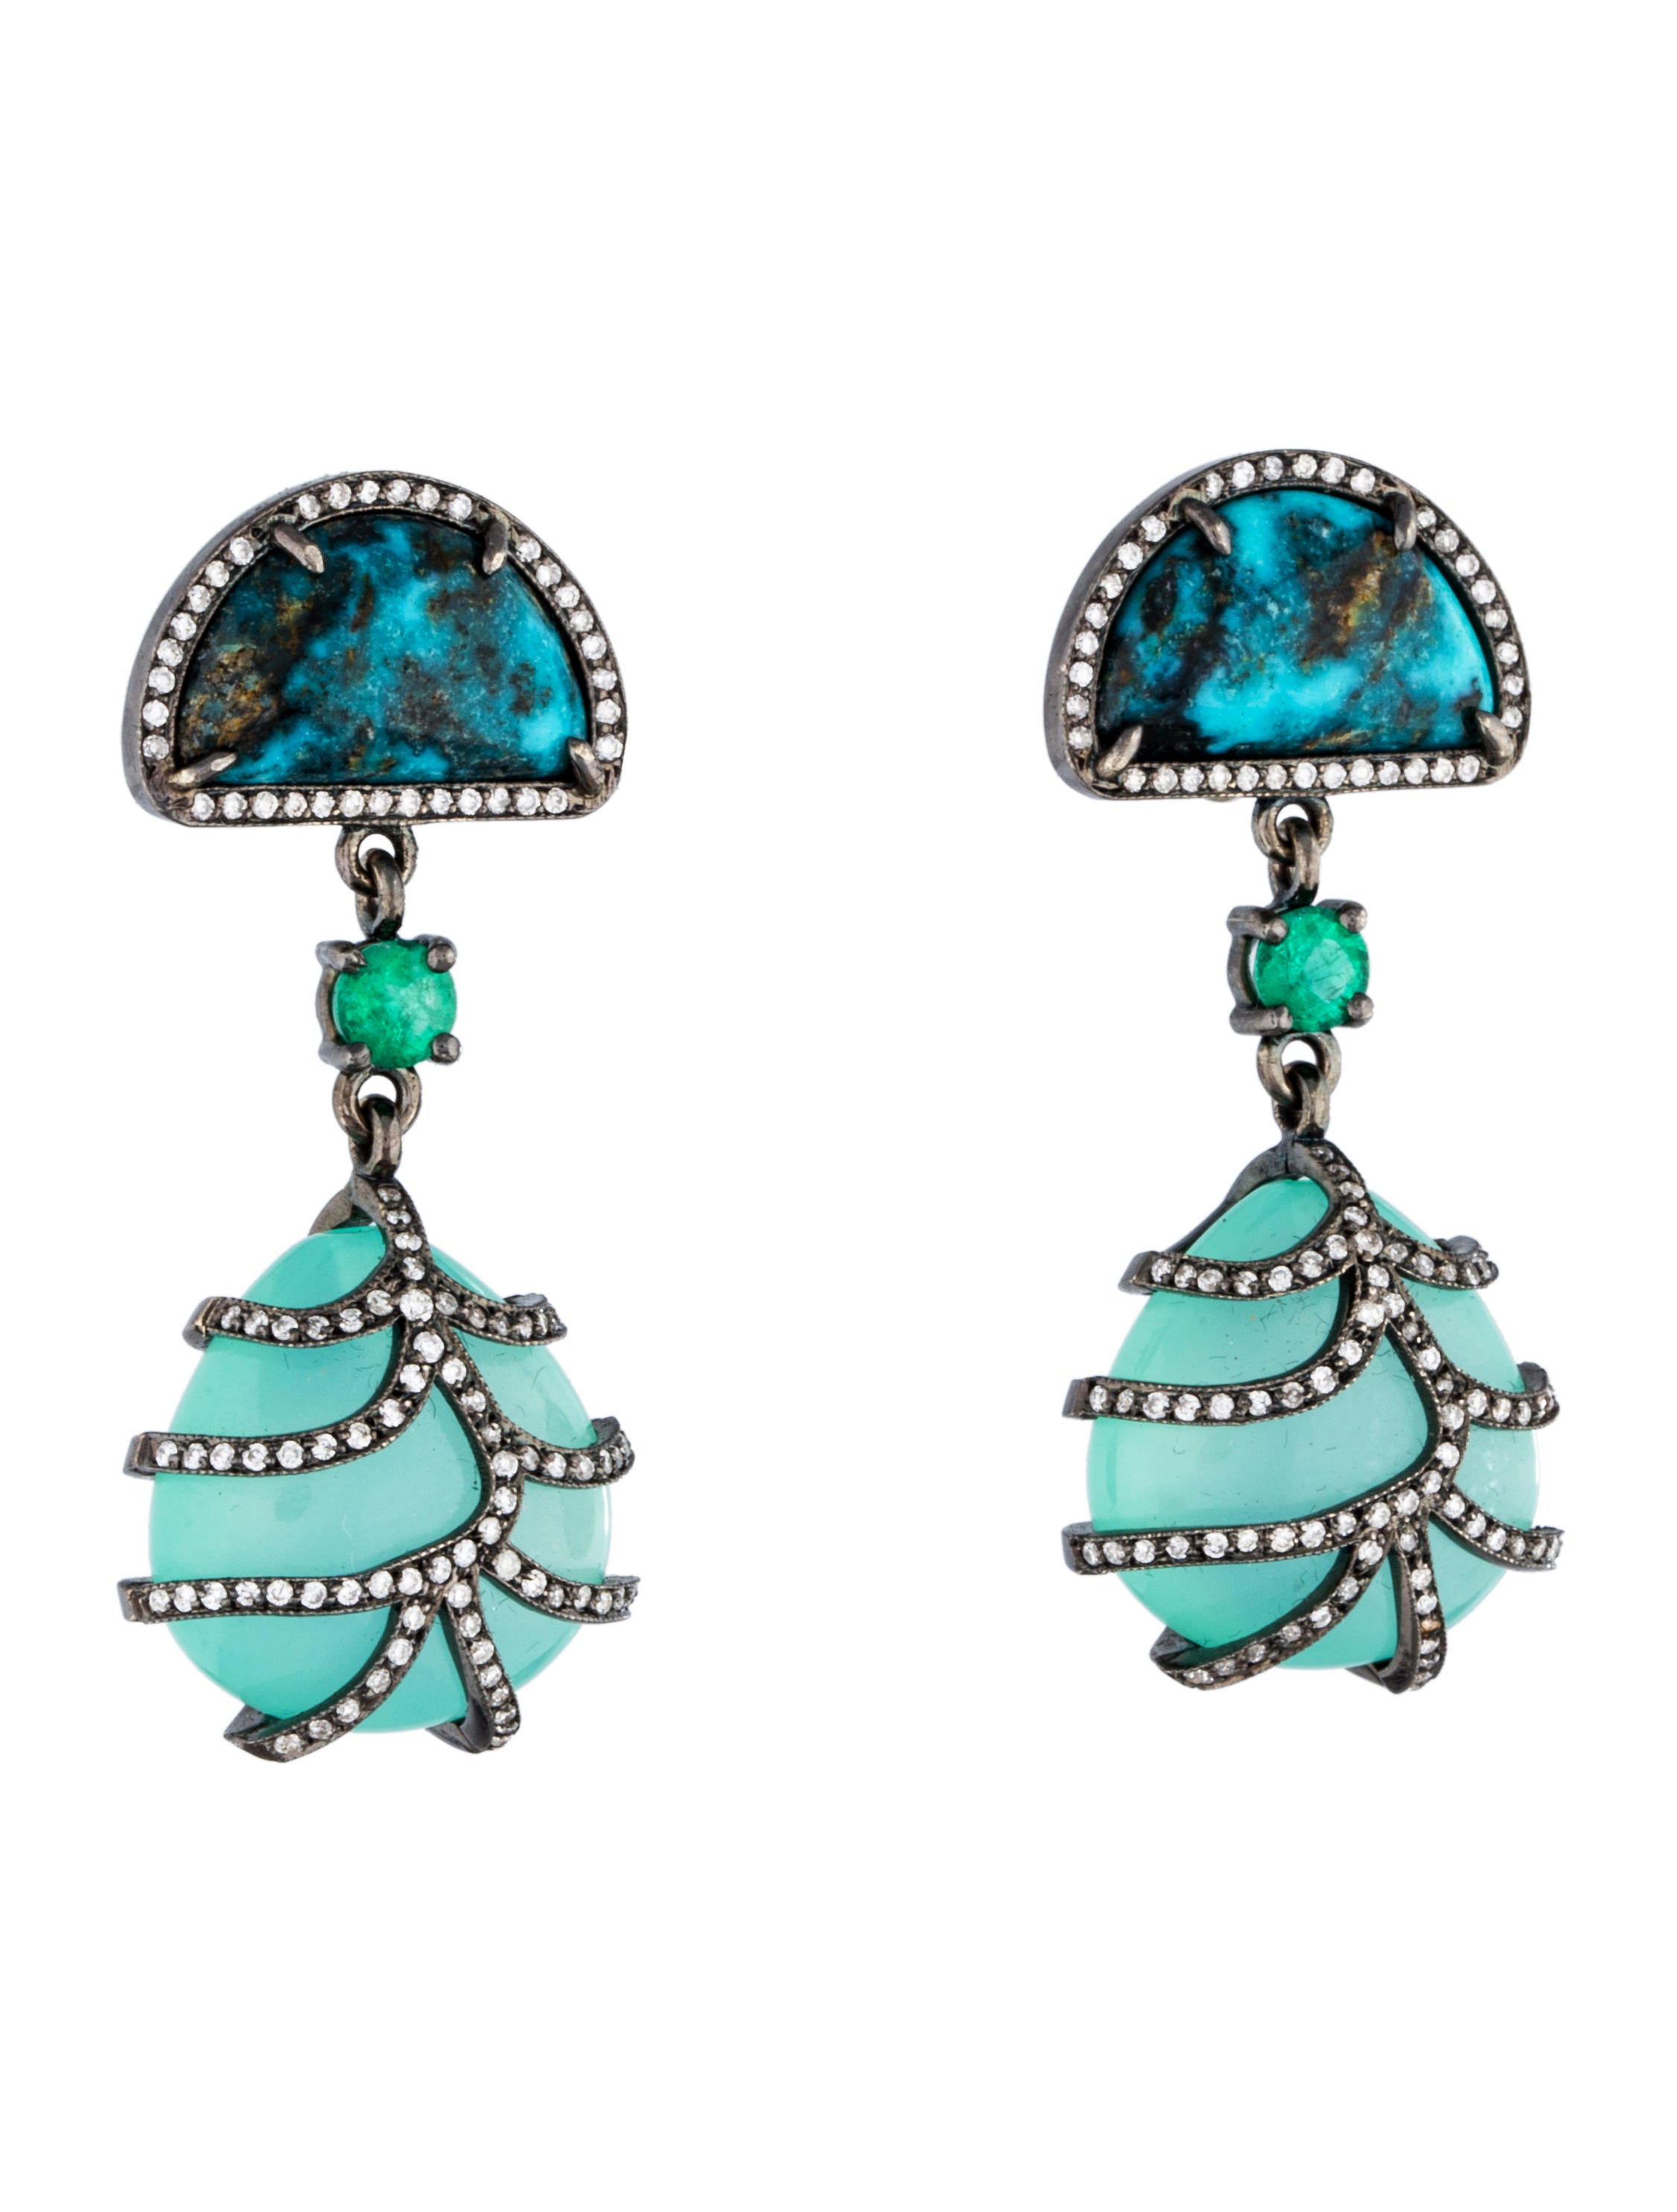 colette jewelry blue zircon and turquoise earrings. Black Bedroom Furniture Sets. Home Design Ideas